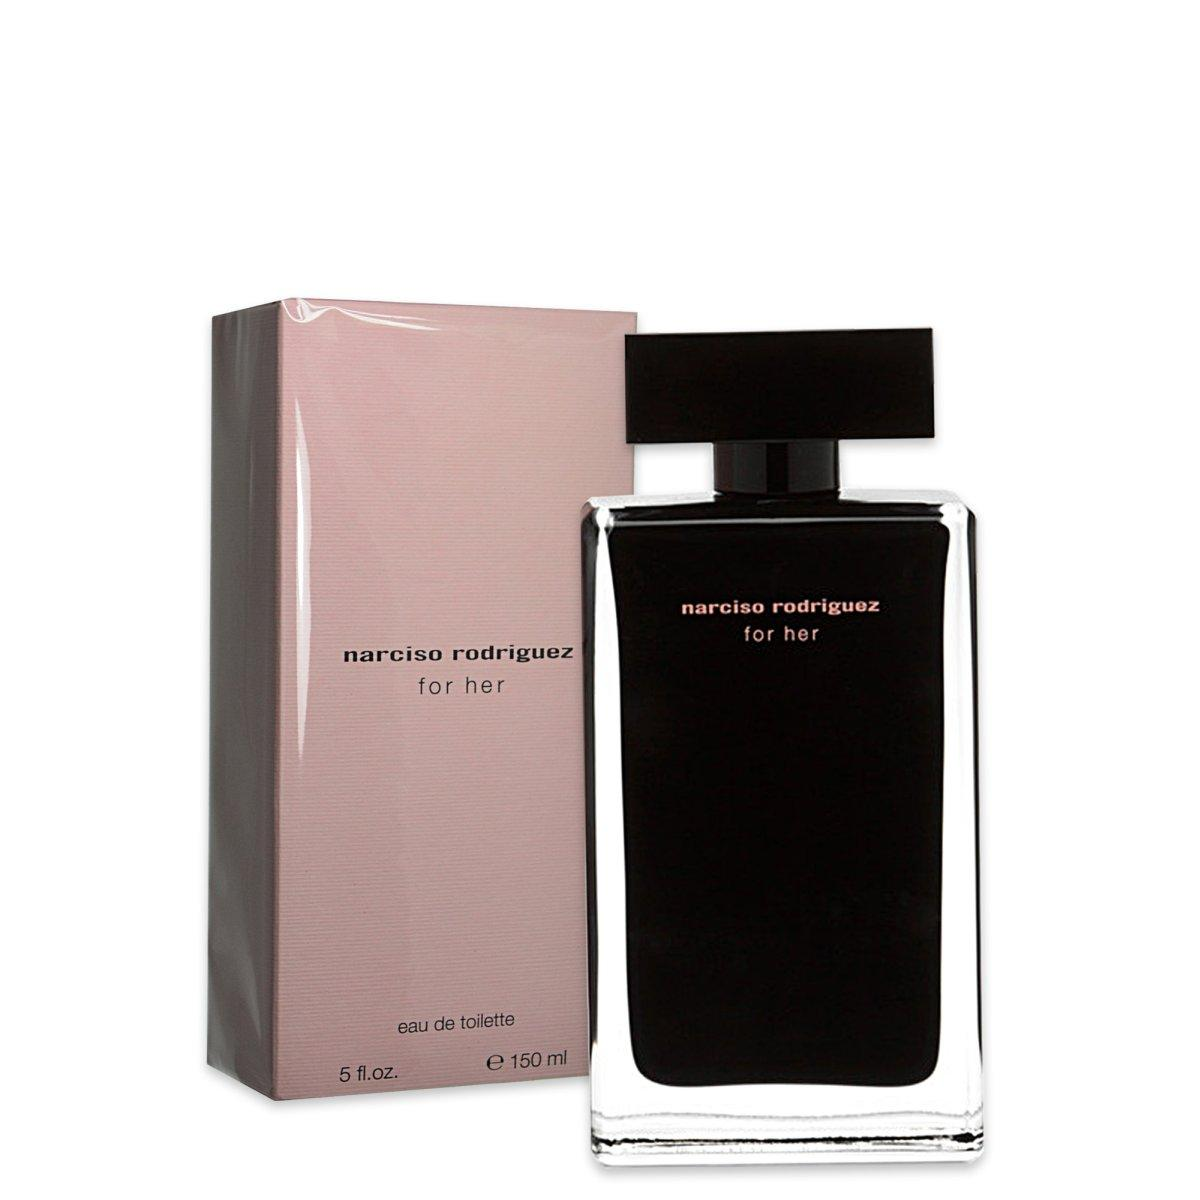 Narciso rodriguez edt 150 ml